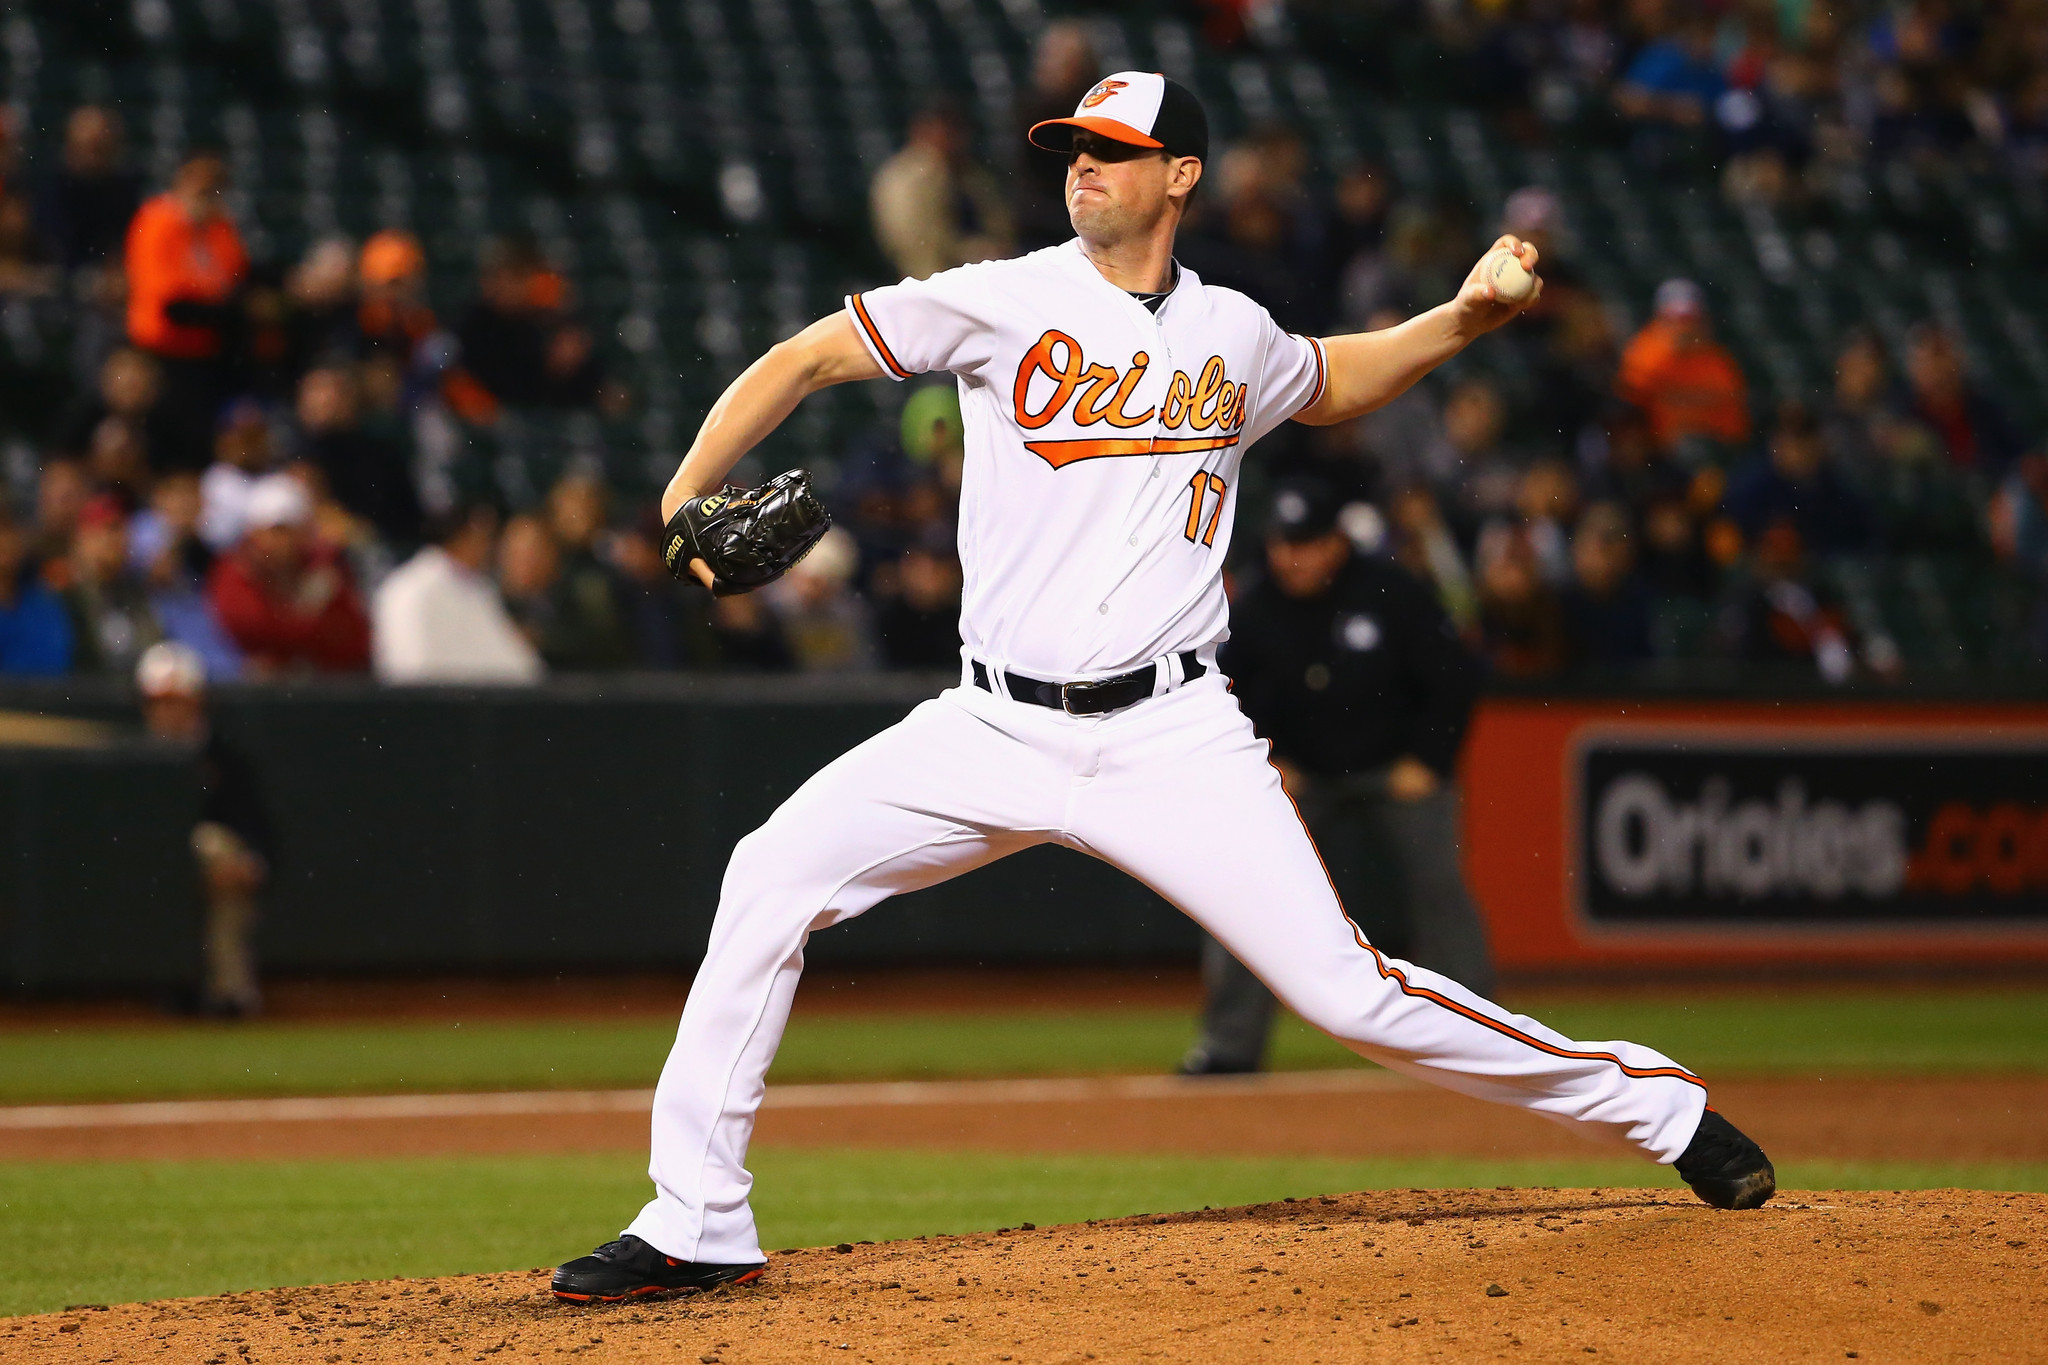 Bal-orioles-trade-brian-matusz-to-braves-for-pitching-prospects-20160523